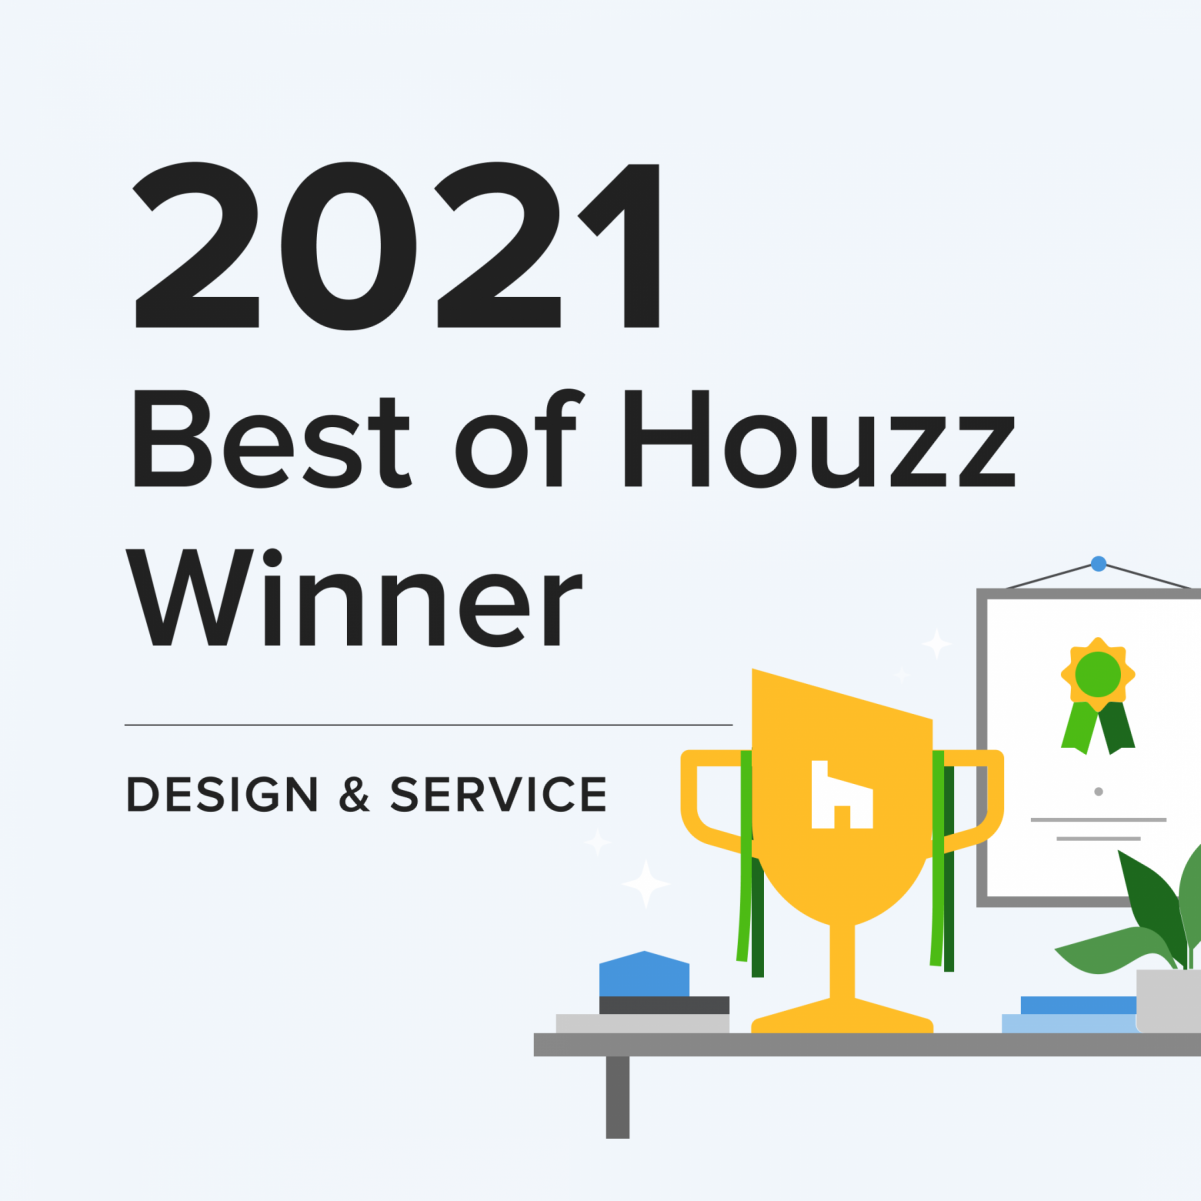 Classic Remodeling Receives Best of Houzz 2021